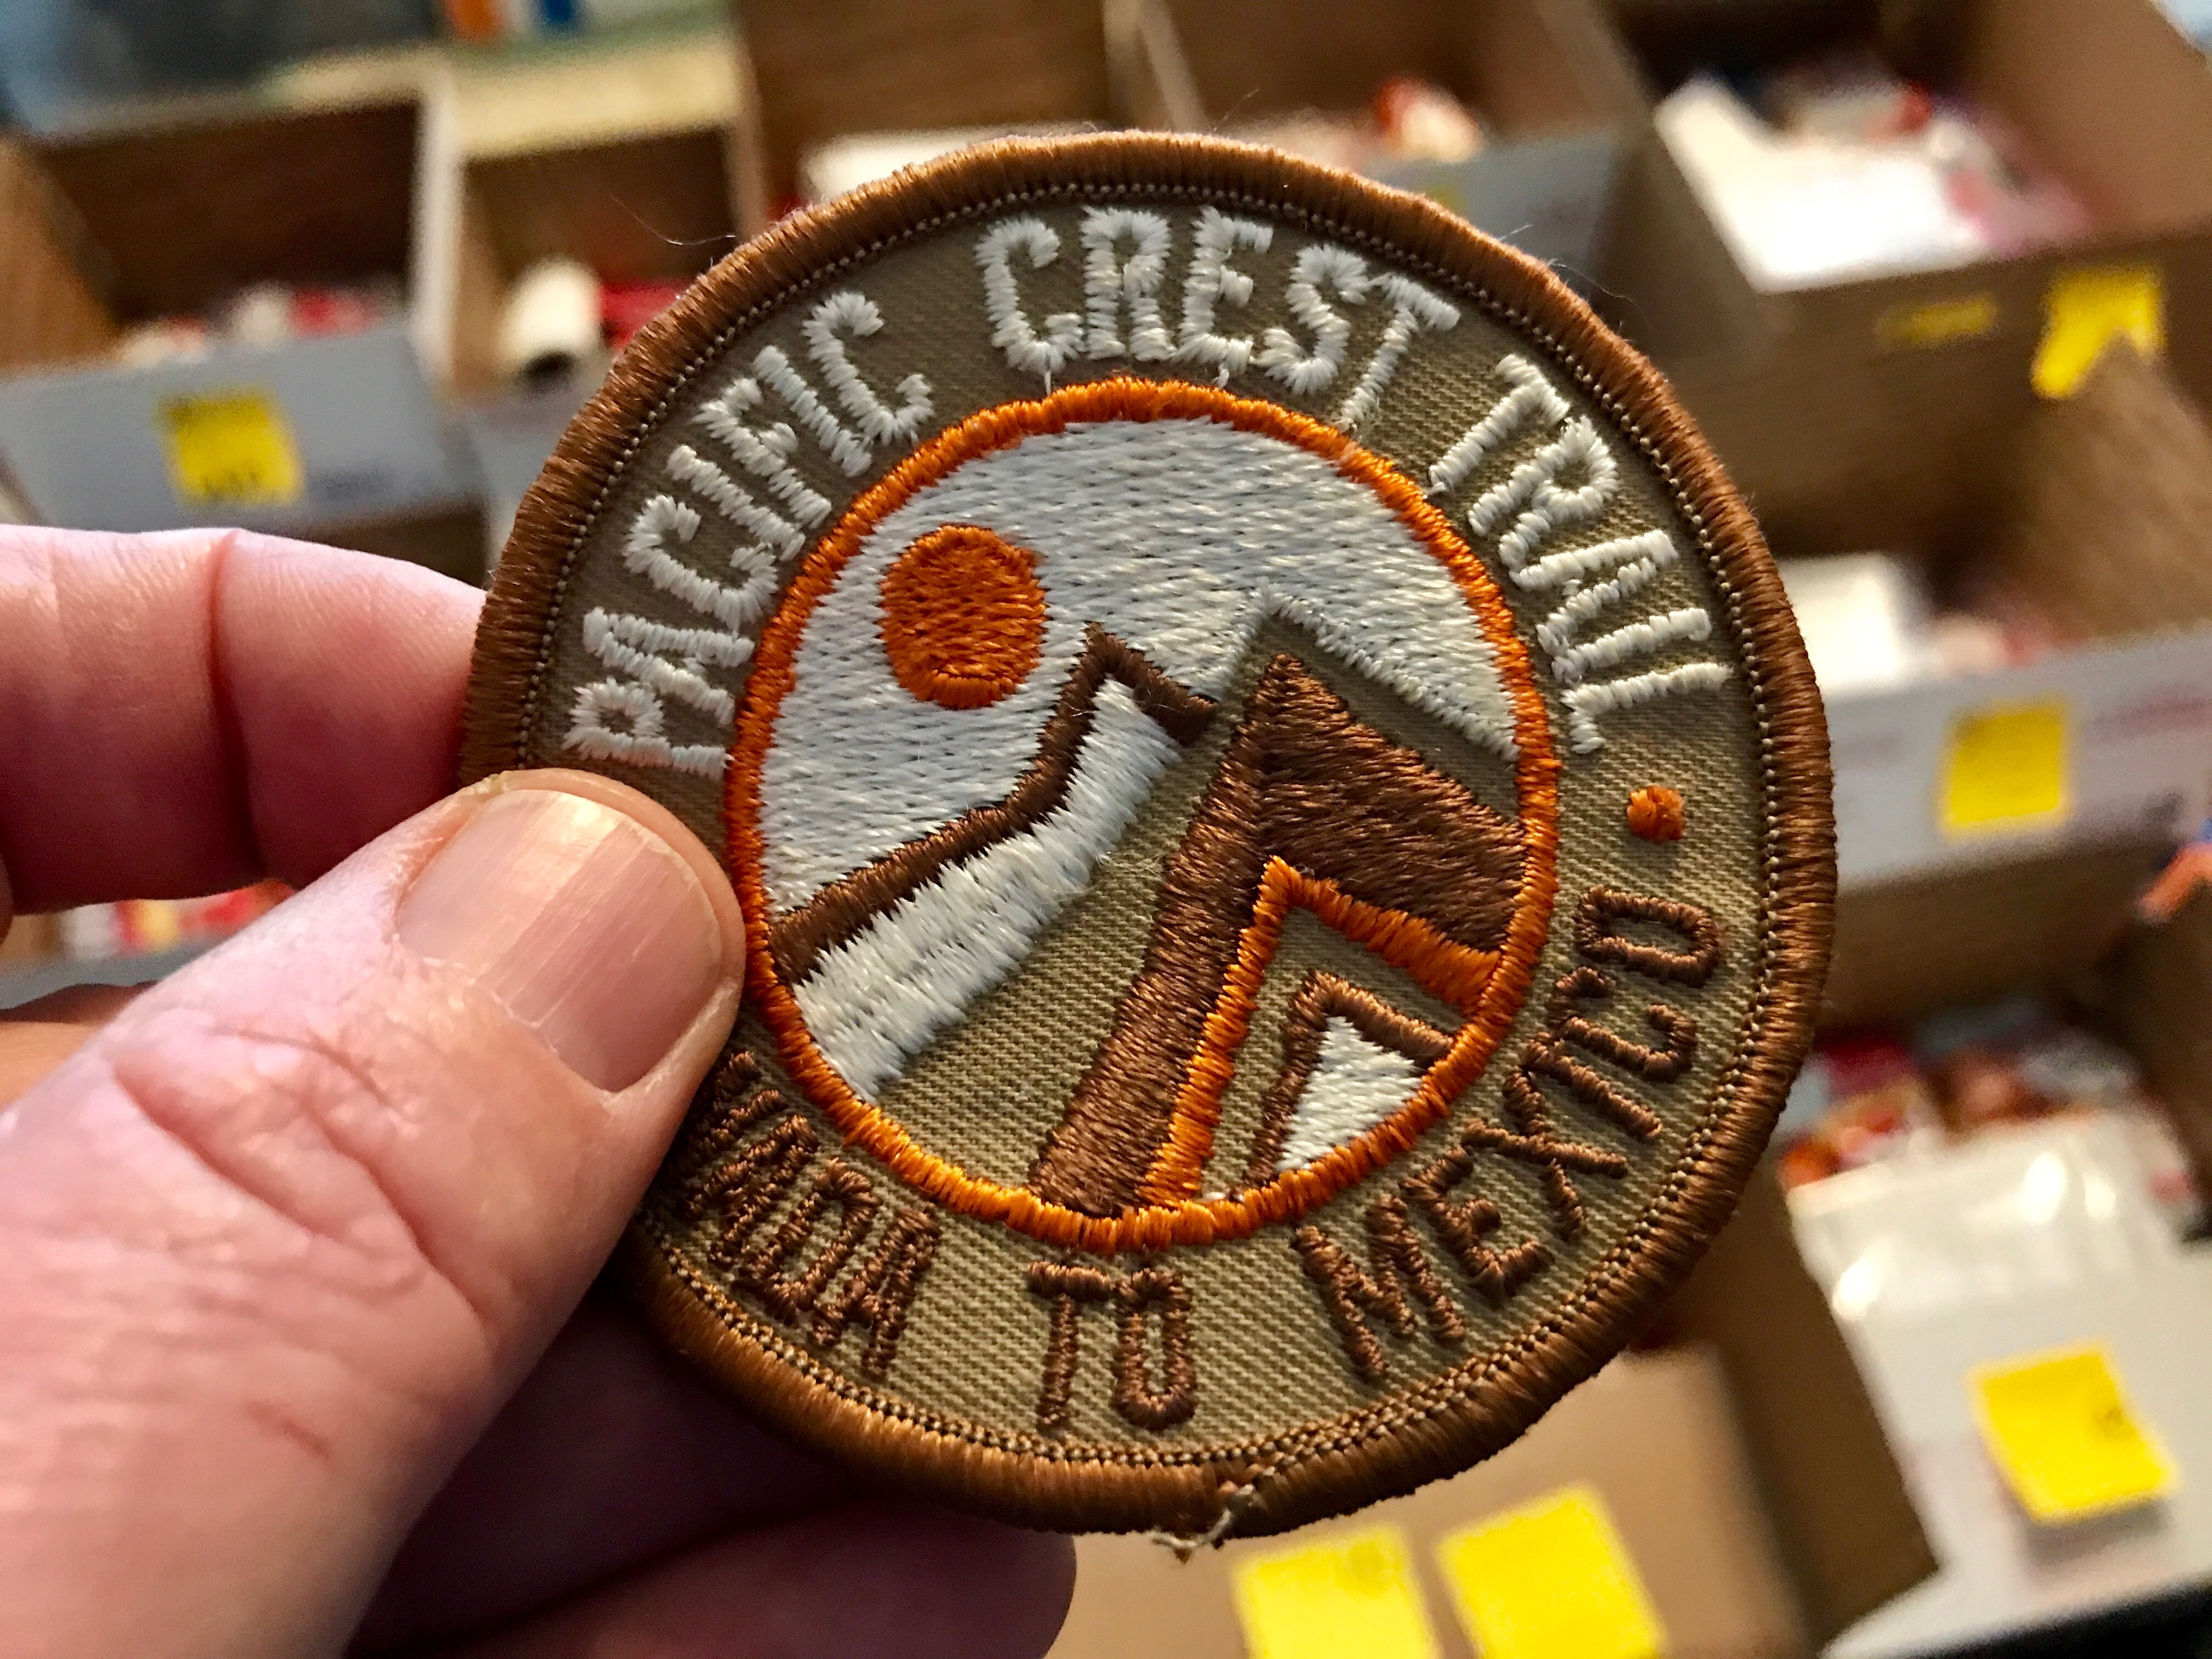 The PCT finally arrives front and center in this hiker's life